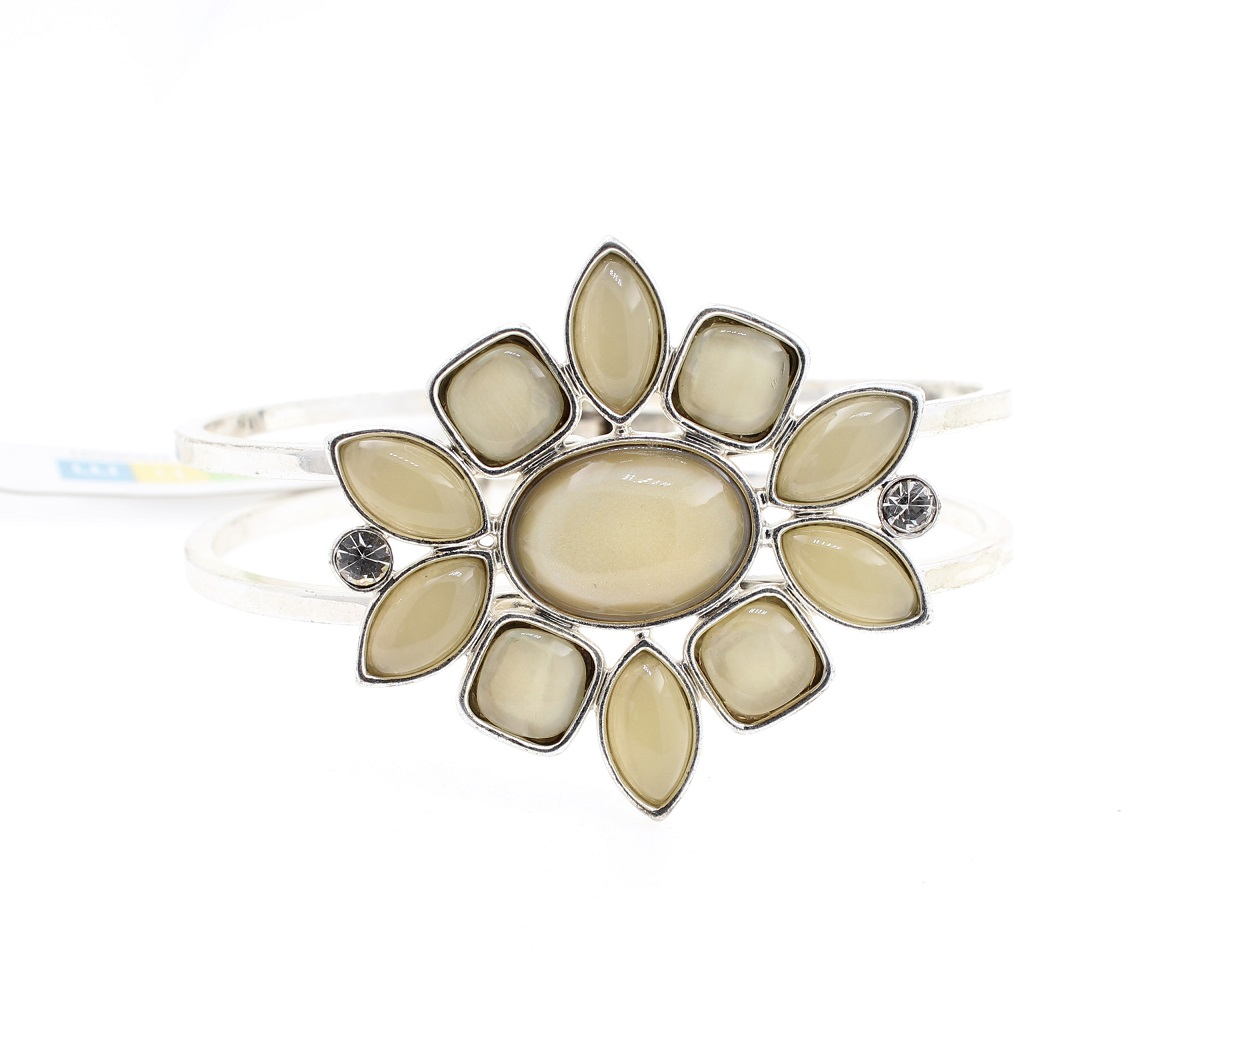 BOHM - Glass Petals Hinged Bangle - Oxidised Silver/White & Cream BNWT